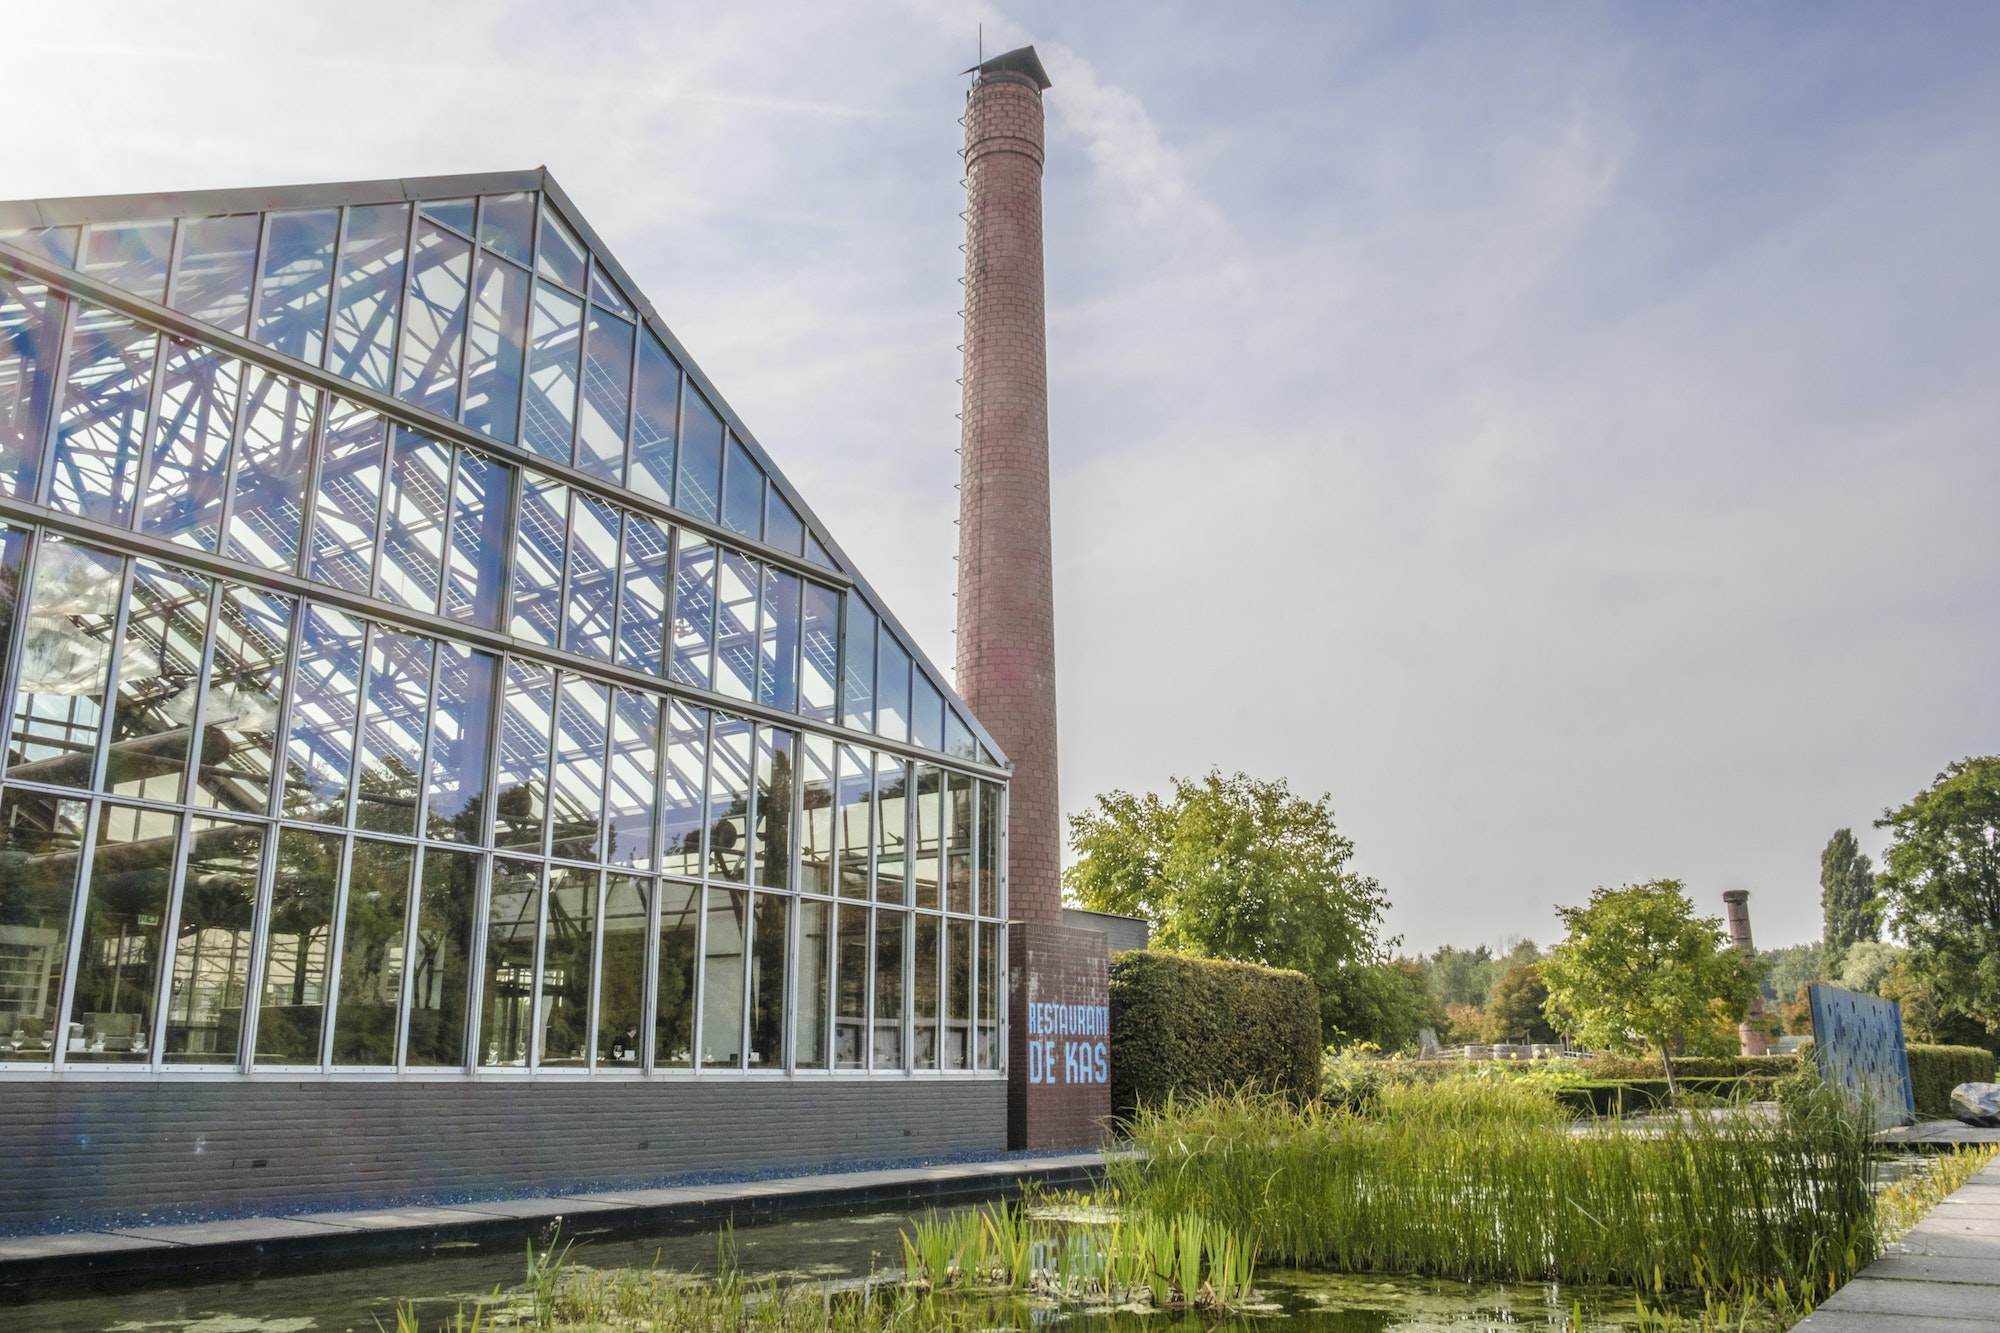 De Kas restaurant is housed in a refurbished greenhouse in Amsterdam.